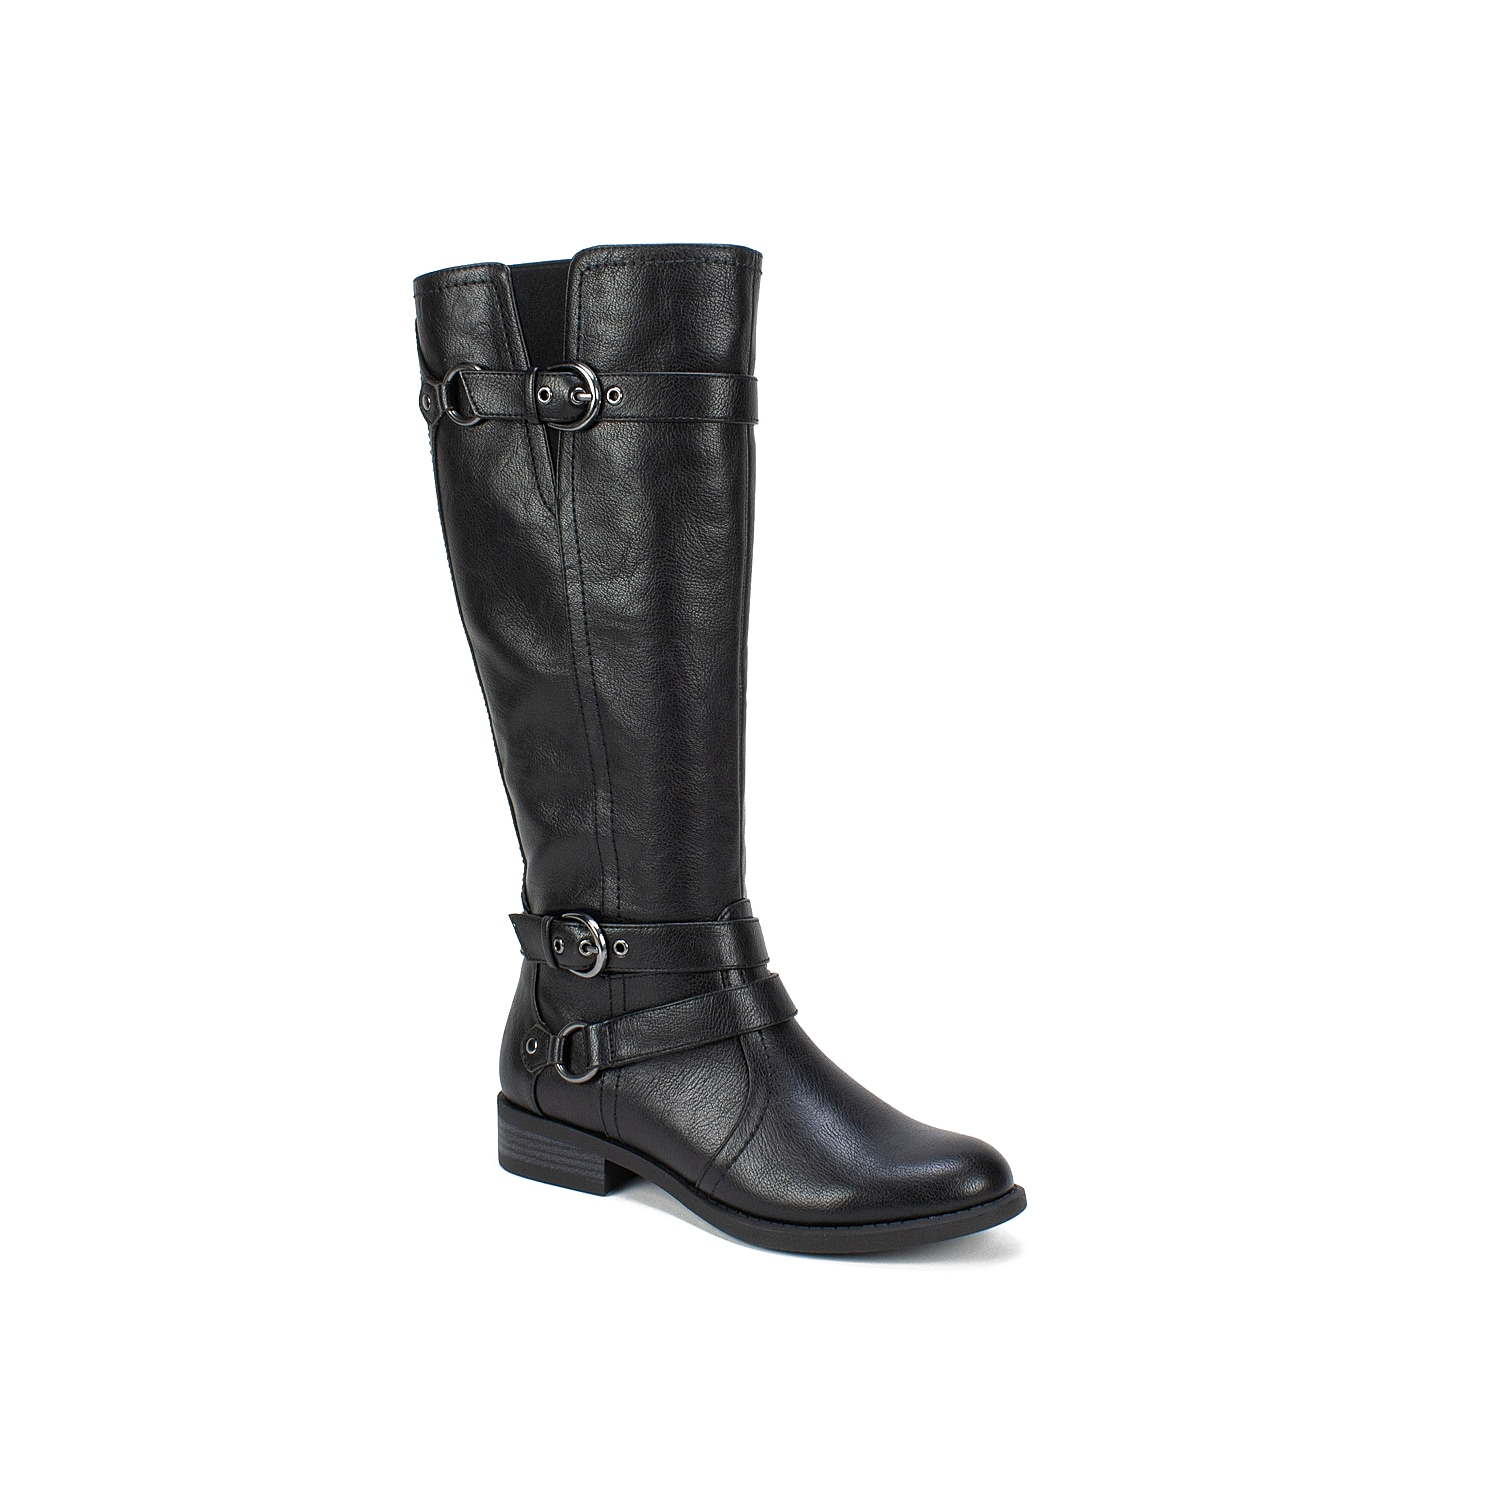 The Loyal wide calf riding boot from the Heritage Collection by White Mountain is a versatile addition to your wardrobe. Designed with an elastic comfort panel for a perfect fit, these tall boots feature decorative wrapped ankle and calf straps with buckle detail and hardware accents for a fashionable look.Click here for Boot Measuring Guide.